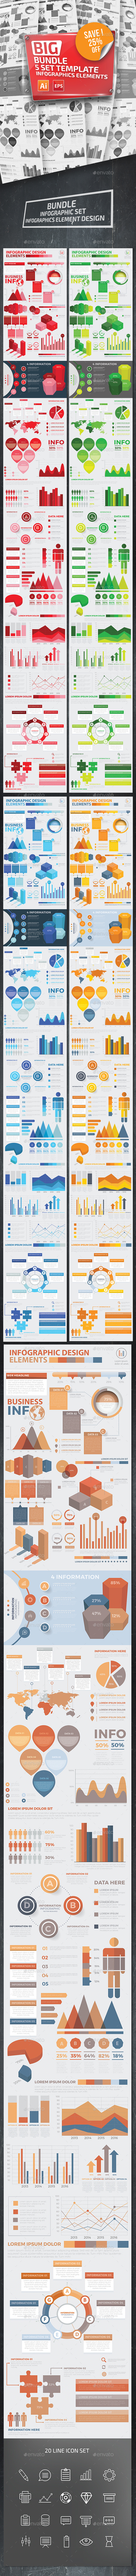 GraphicRiver Bundle 5 Infographic Templates 20357798